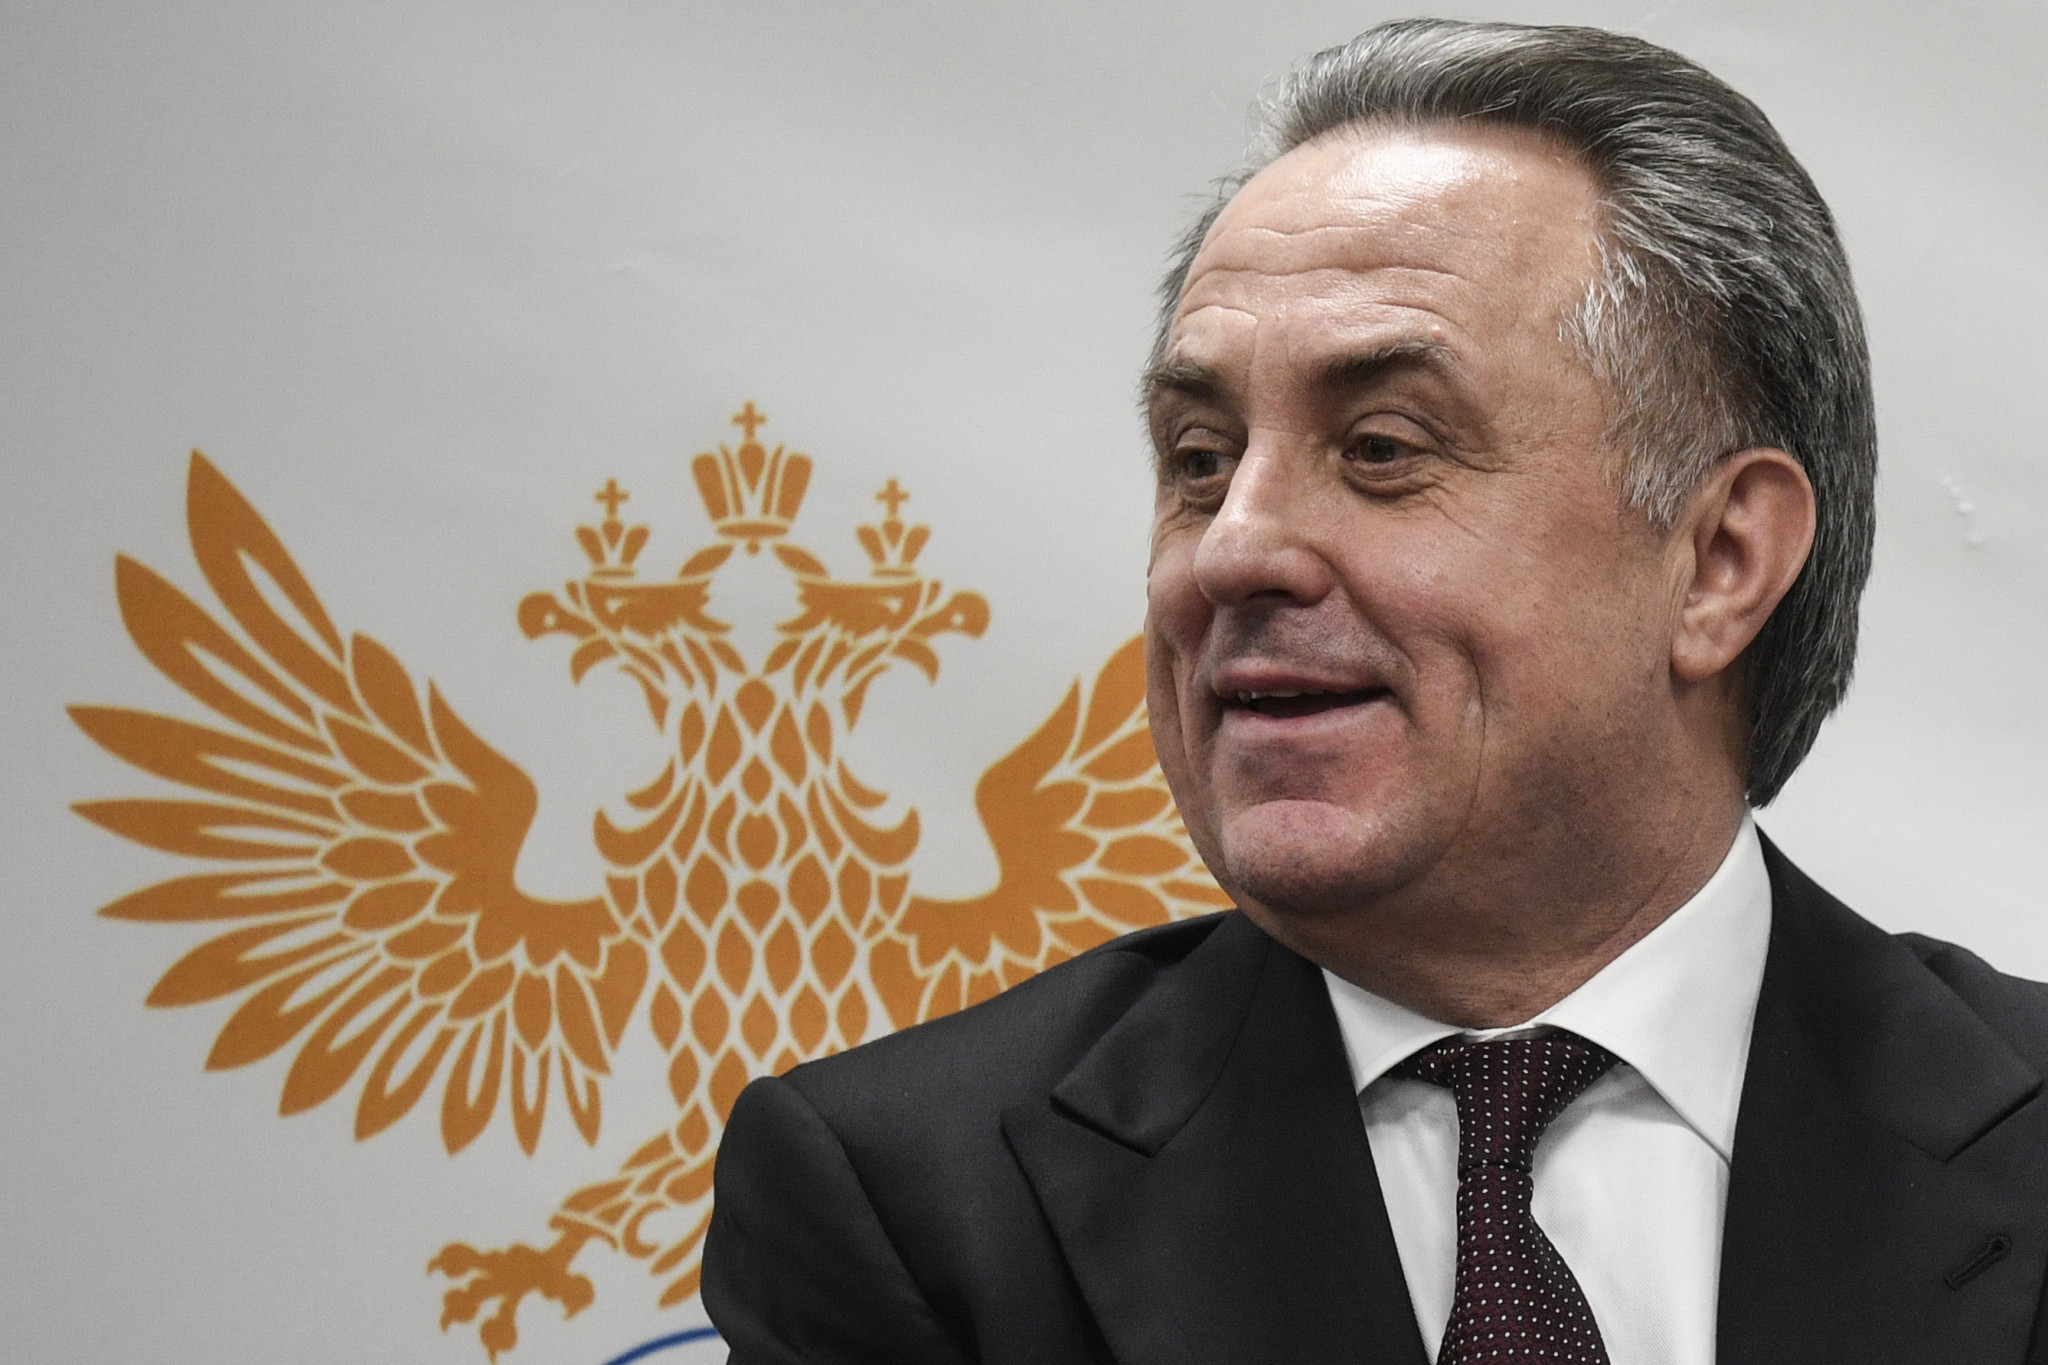 Russian Deputy Prime Minister and former Sports Minister Vitaly Mutko had revealed in February that Ruslan Kambolov was the subject of an anti-doping investigation ©Getty Images